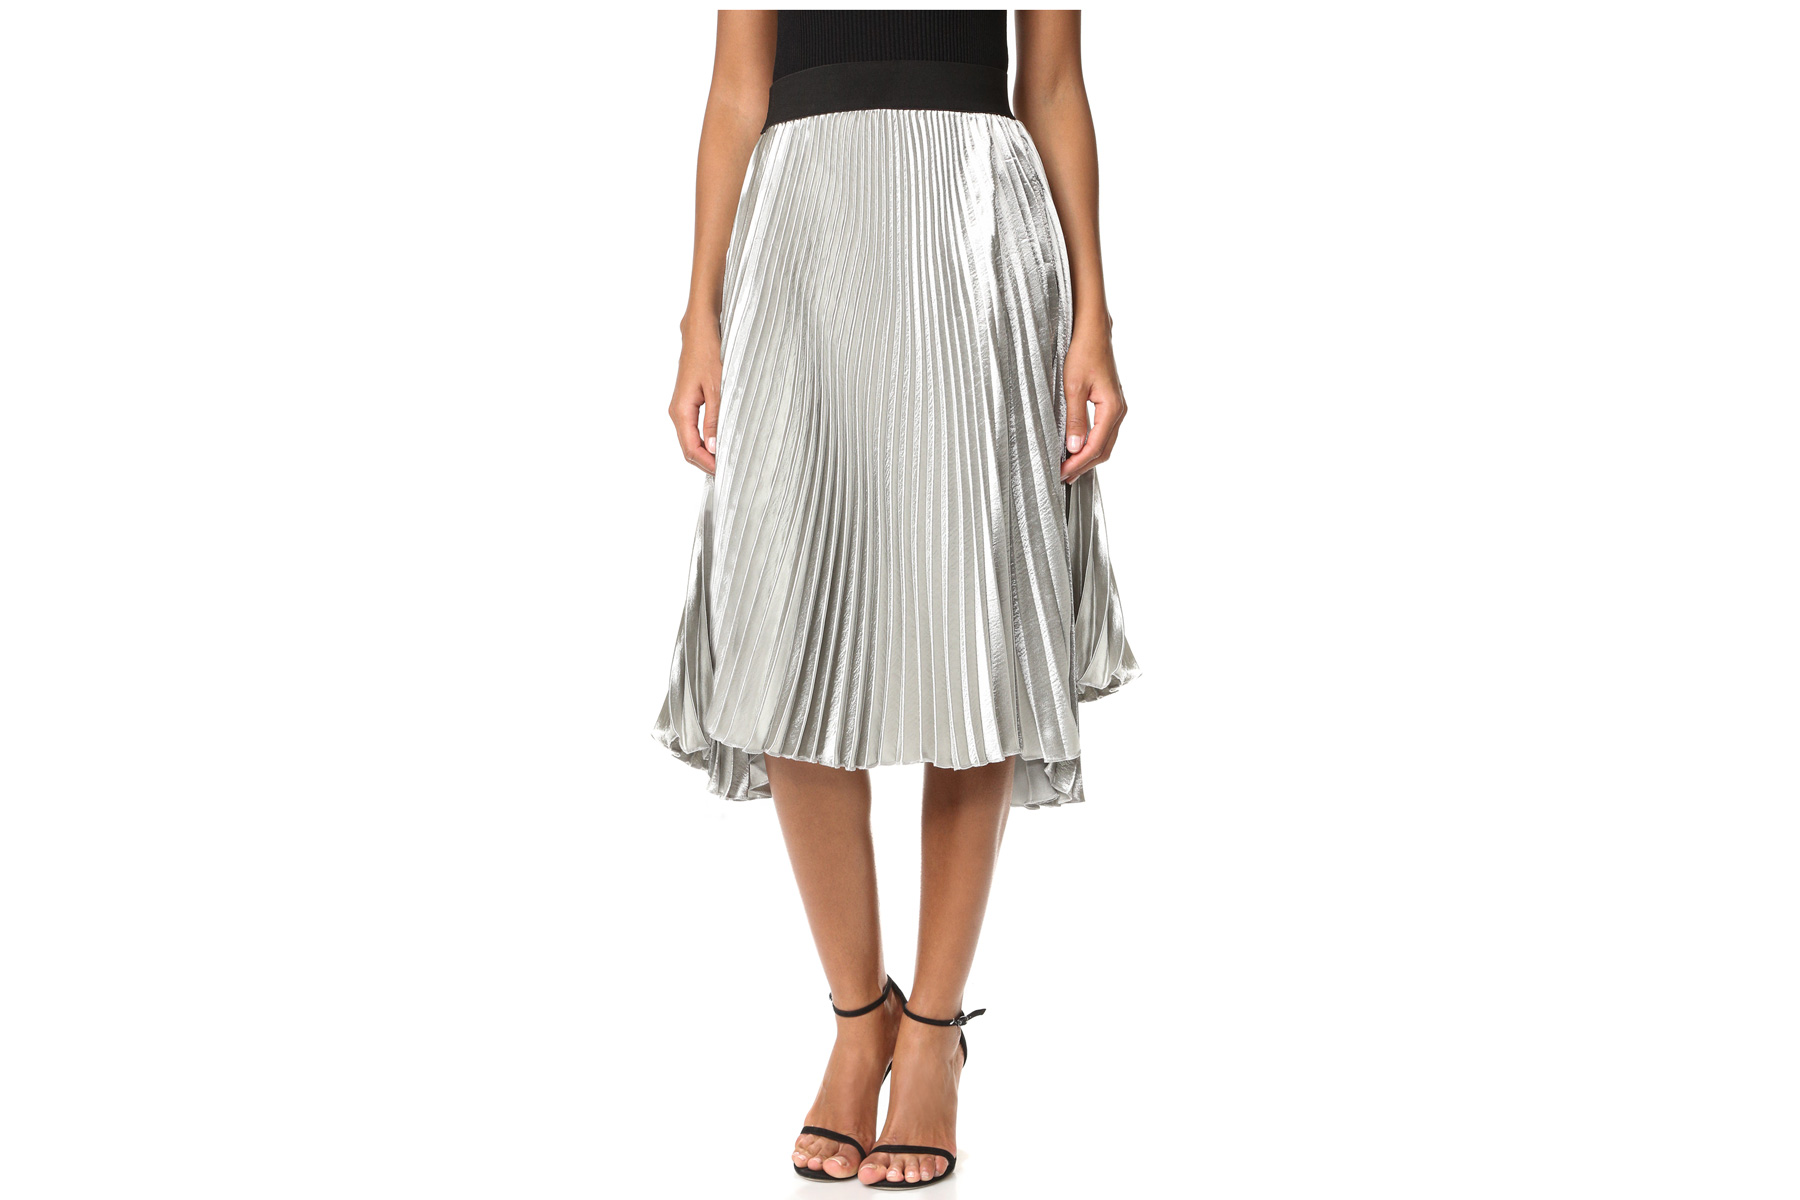 Stylekeepers Retro Juliette Pleated Skirt